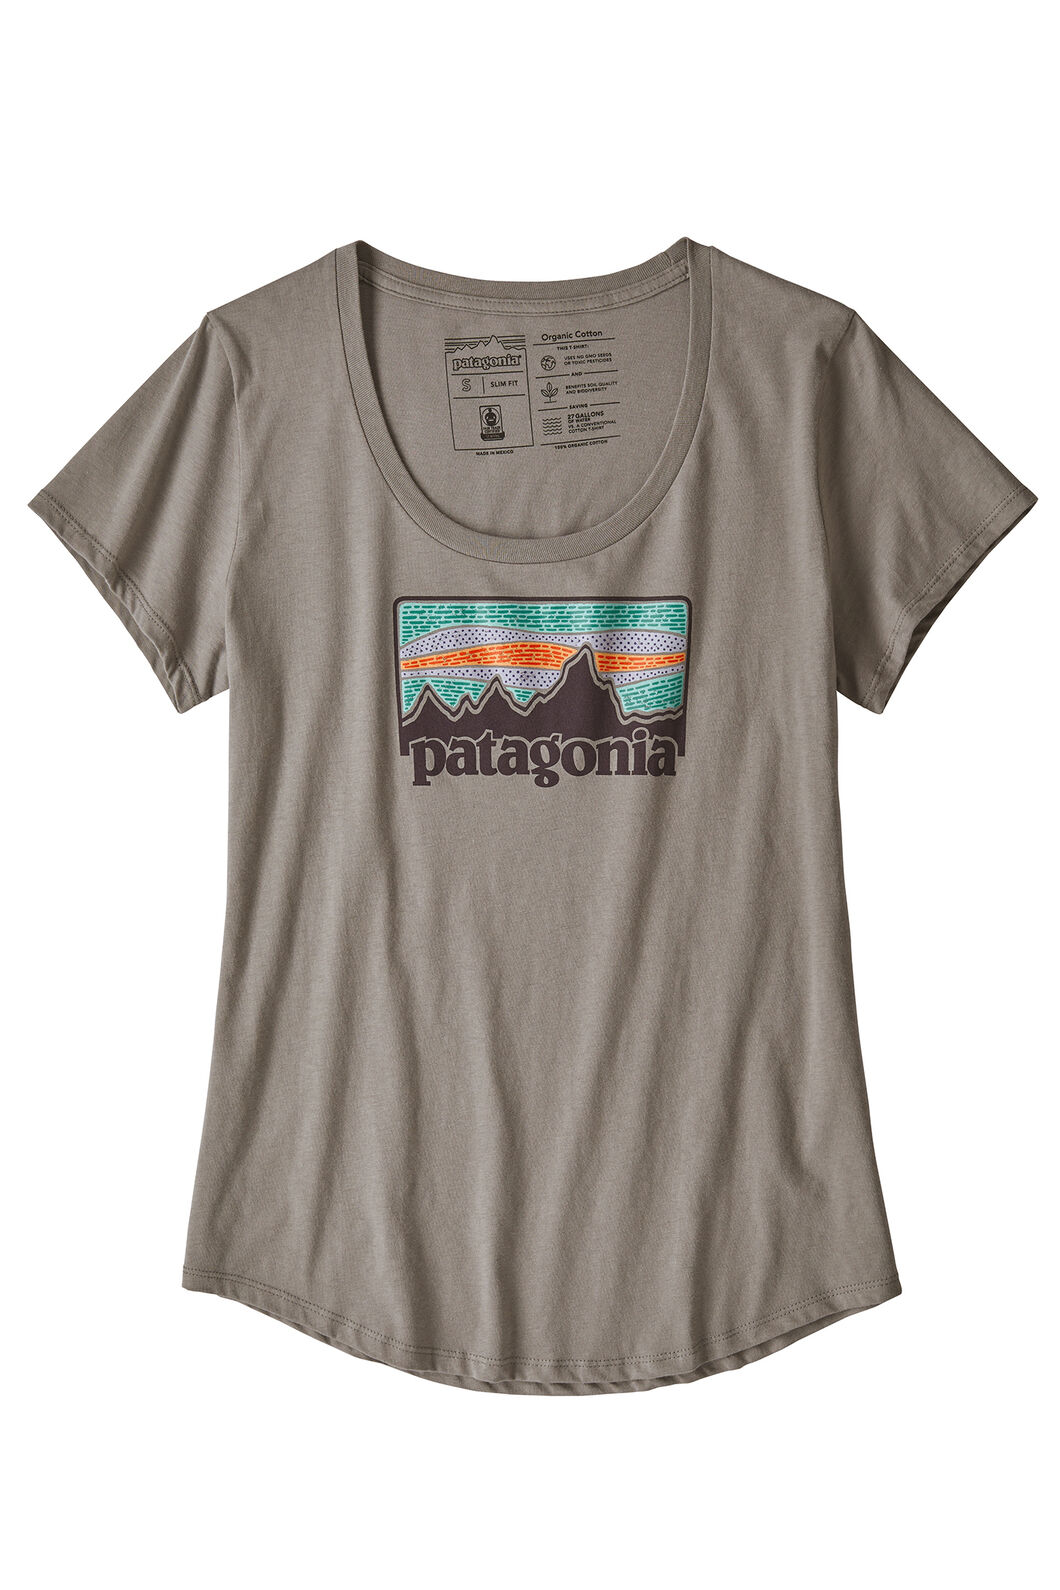 Patagonia W's Solar Rays 73 Tee, FEATHER GREY, hi-res